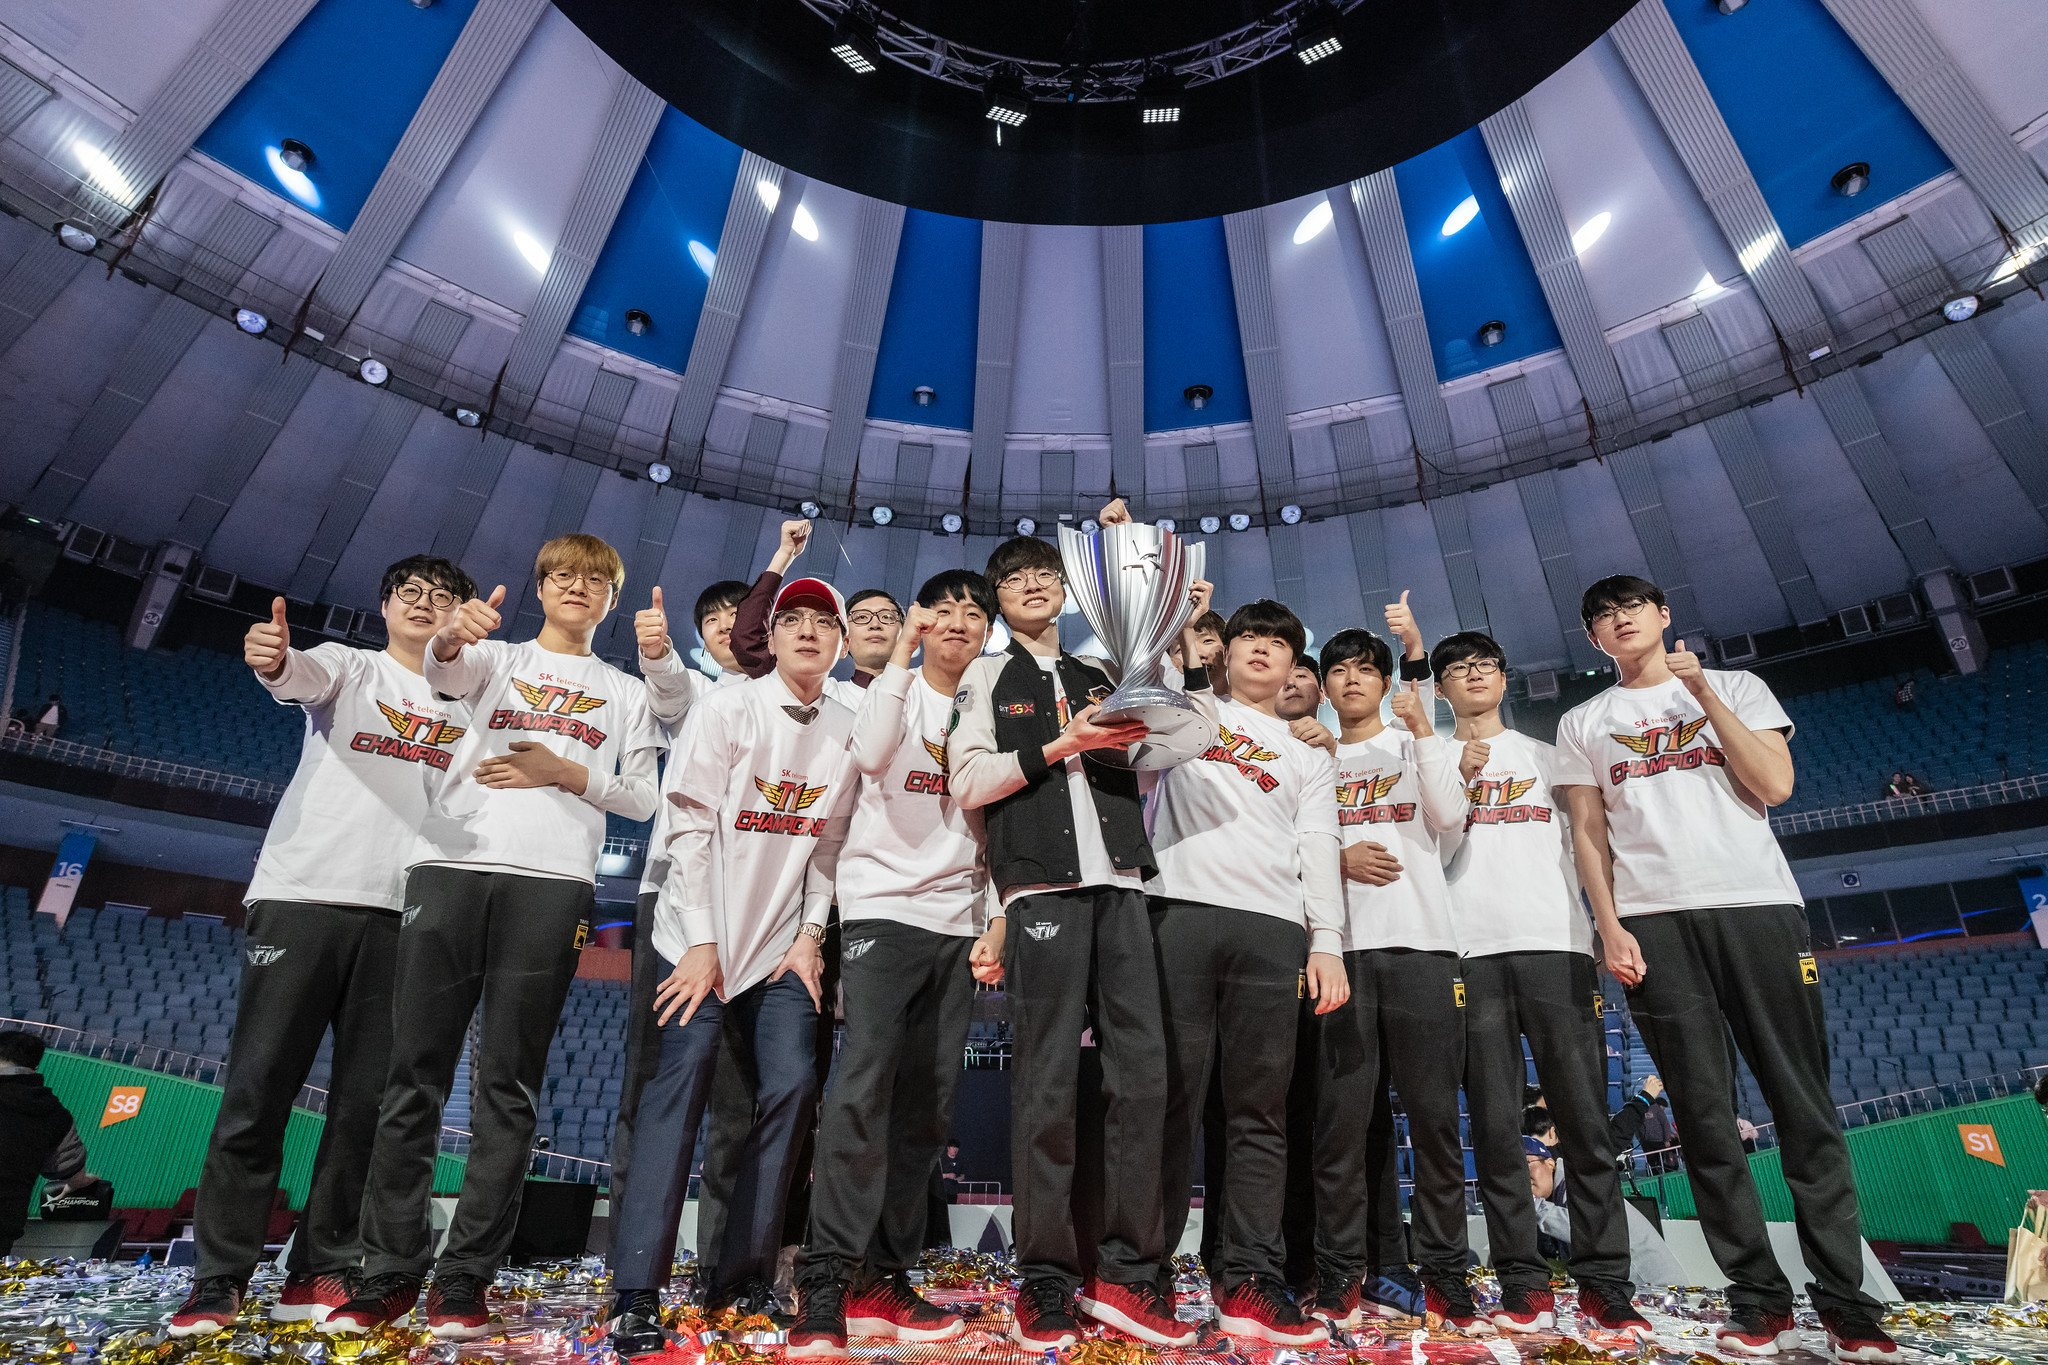 A little bit of Effort has made all the difference for SKT